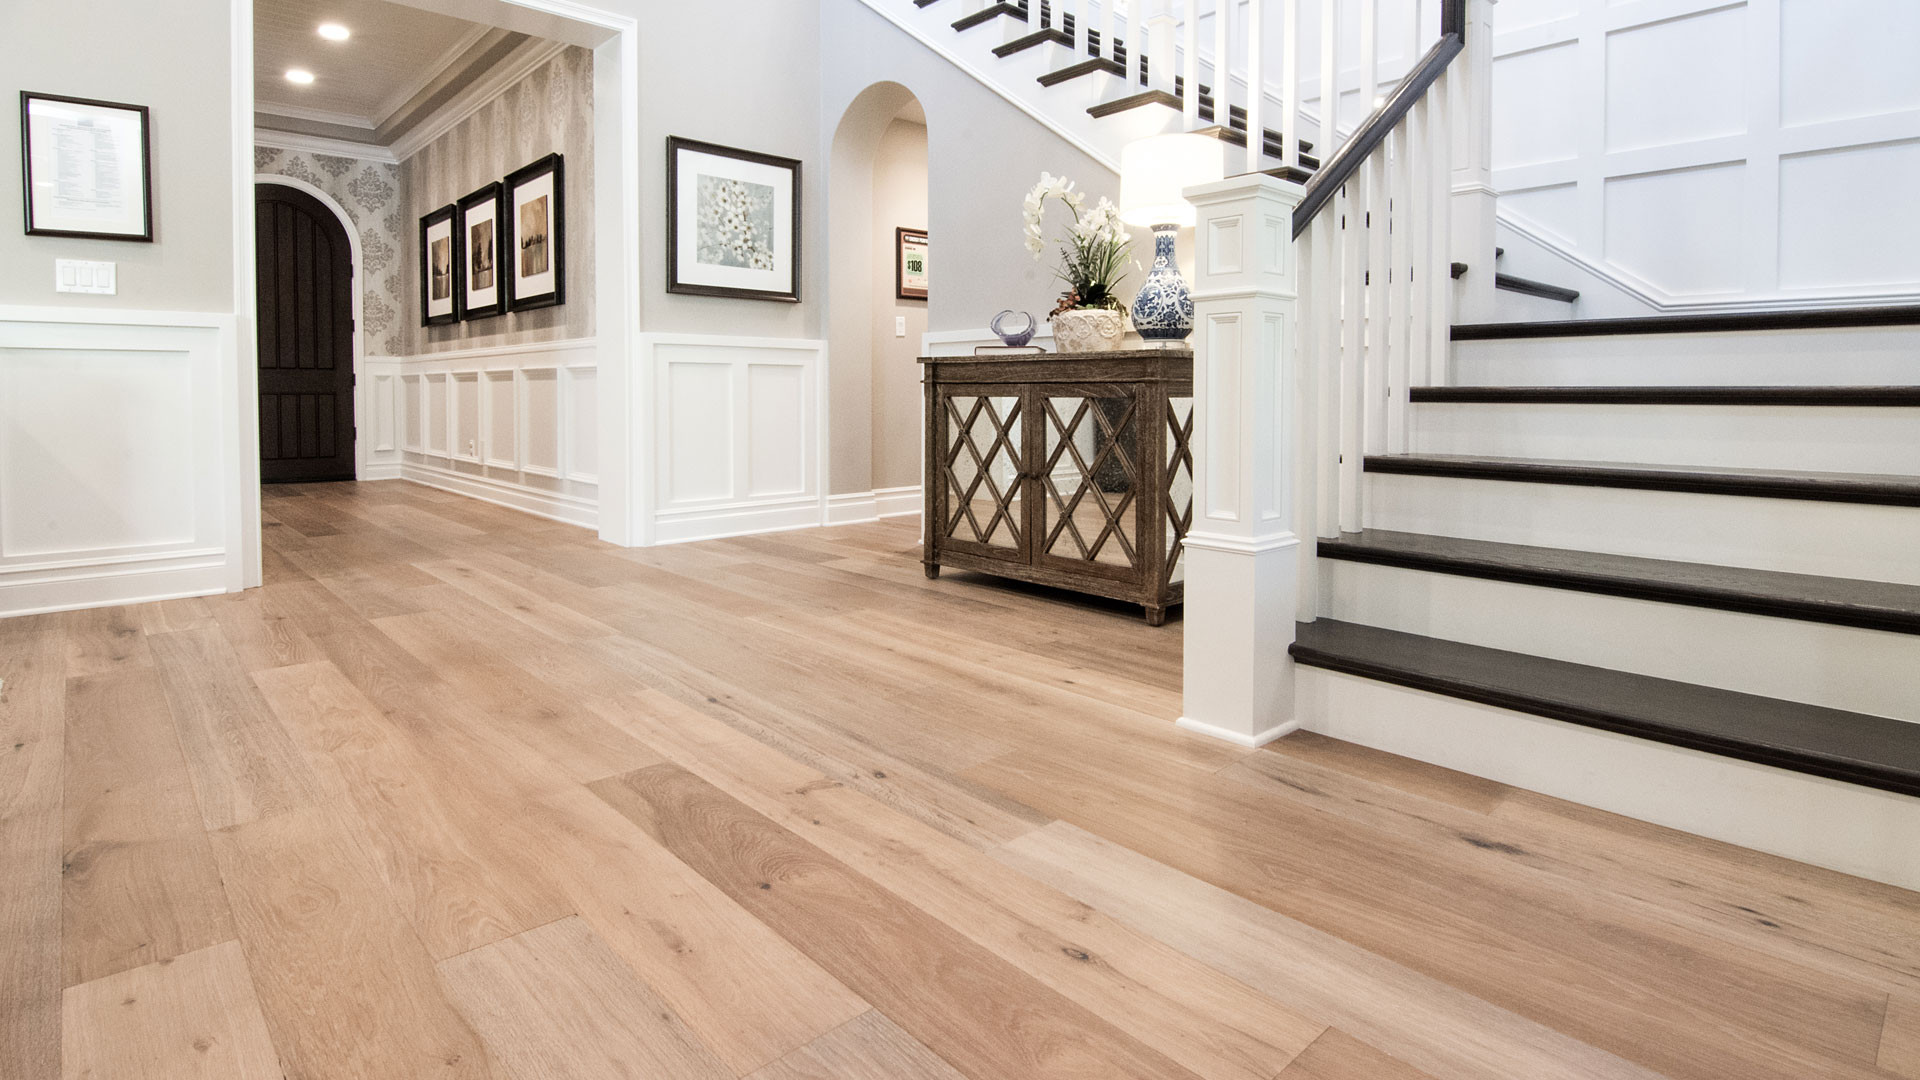 hardwood floor trends of provenza floors matte is the new black the latest trend in hardwood within provenza floors matte is the new black the latest trend in hardwood flooring